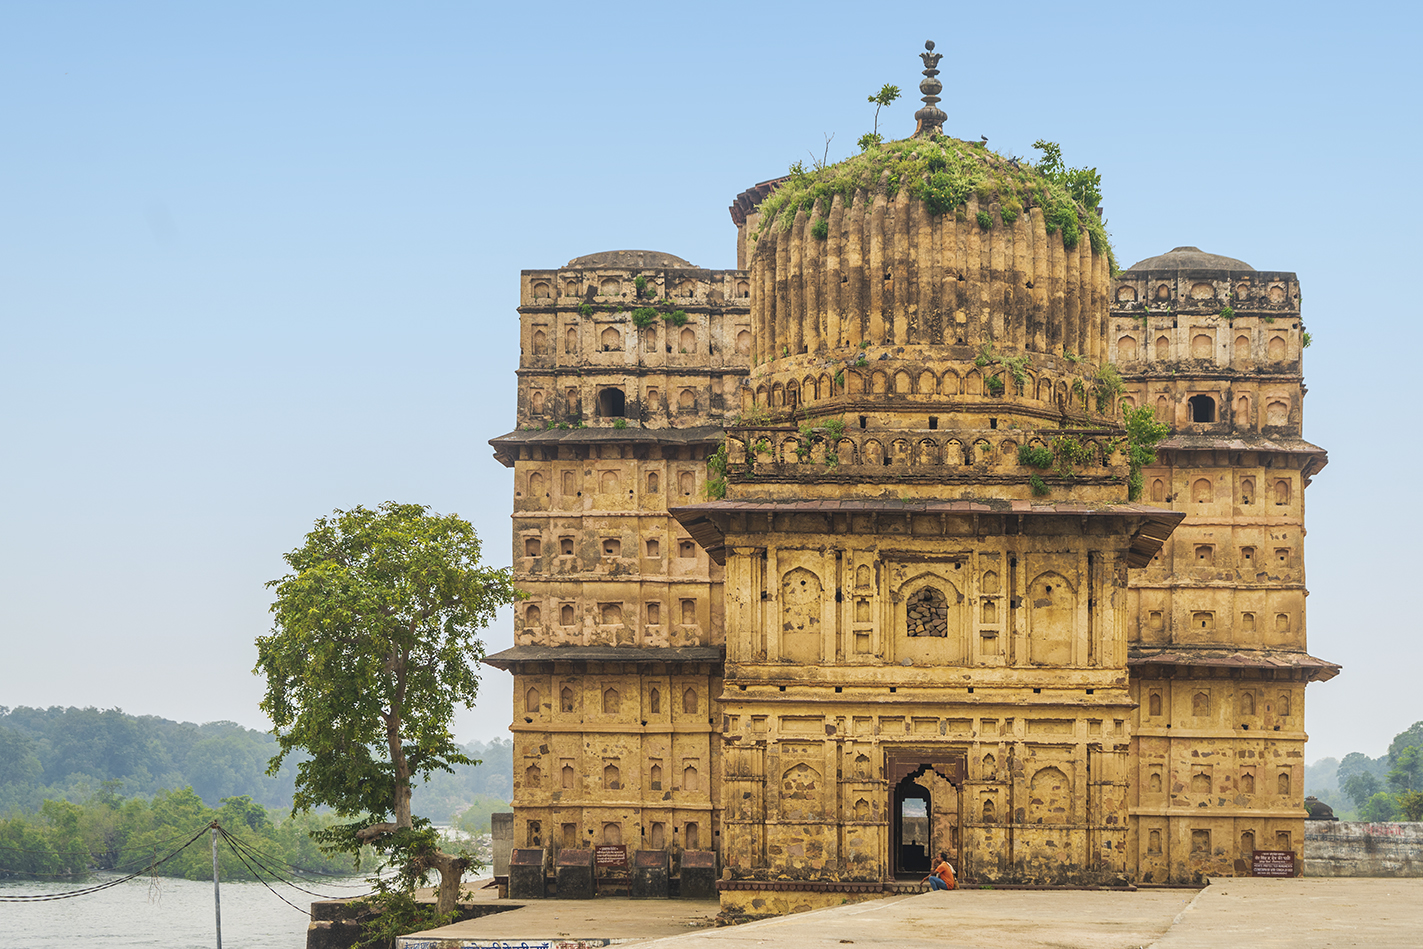 Situated on the banks of Betwa river, the cenotaph of Raja Vir Singh Deo is the most elaborate and remarkable